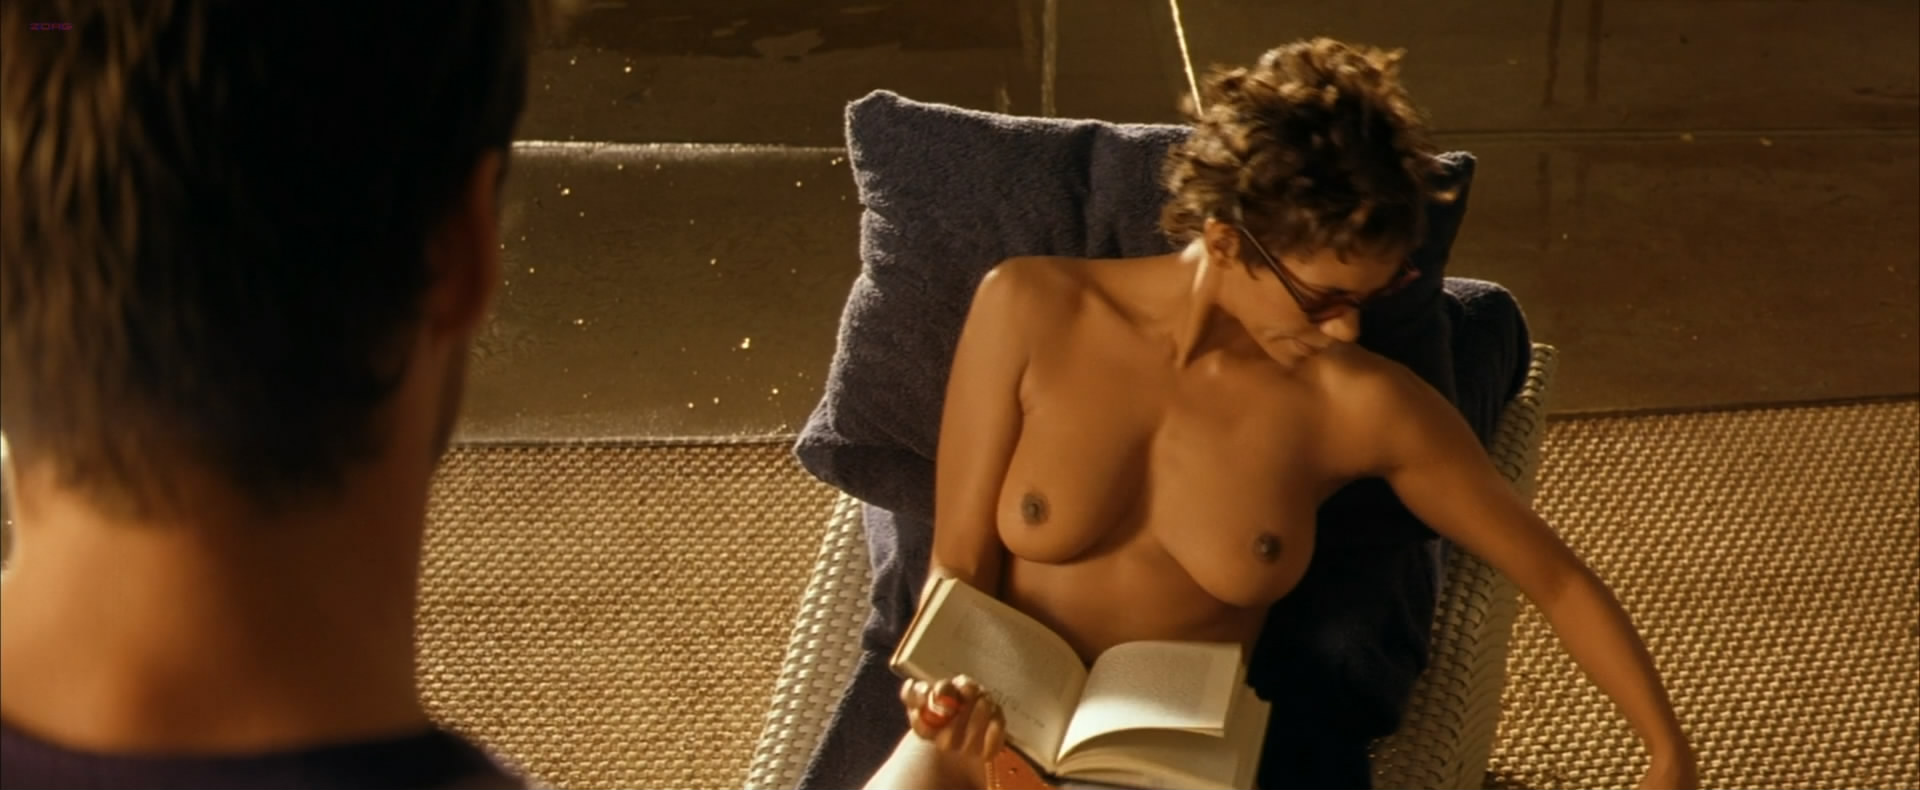 Halle berry swordfish topless apologise, but